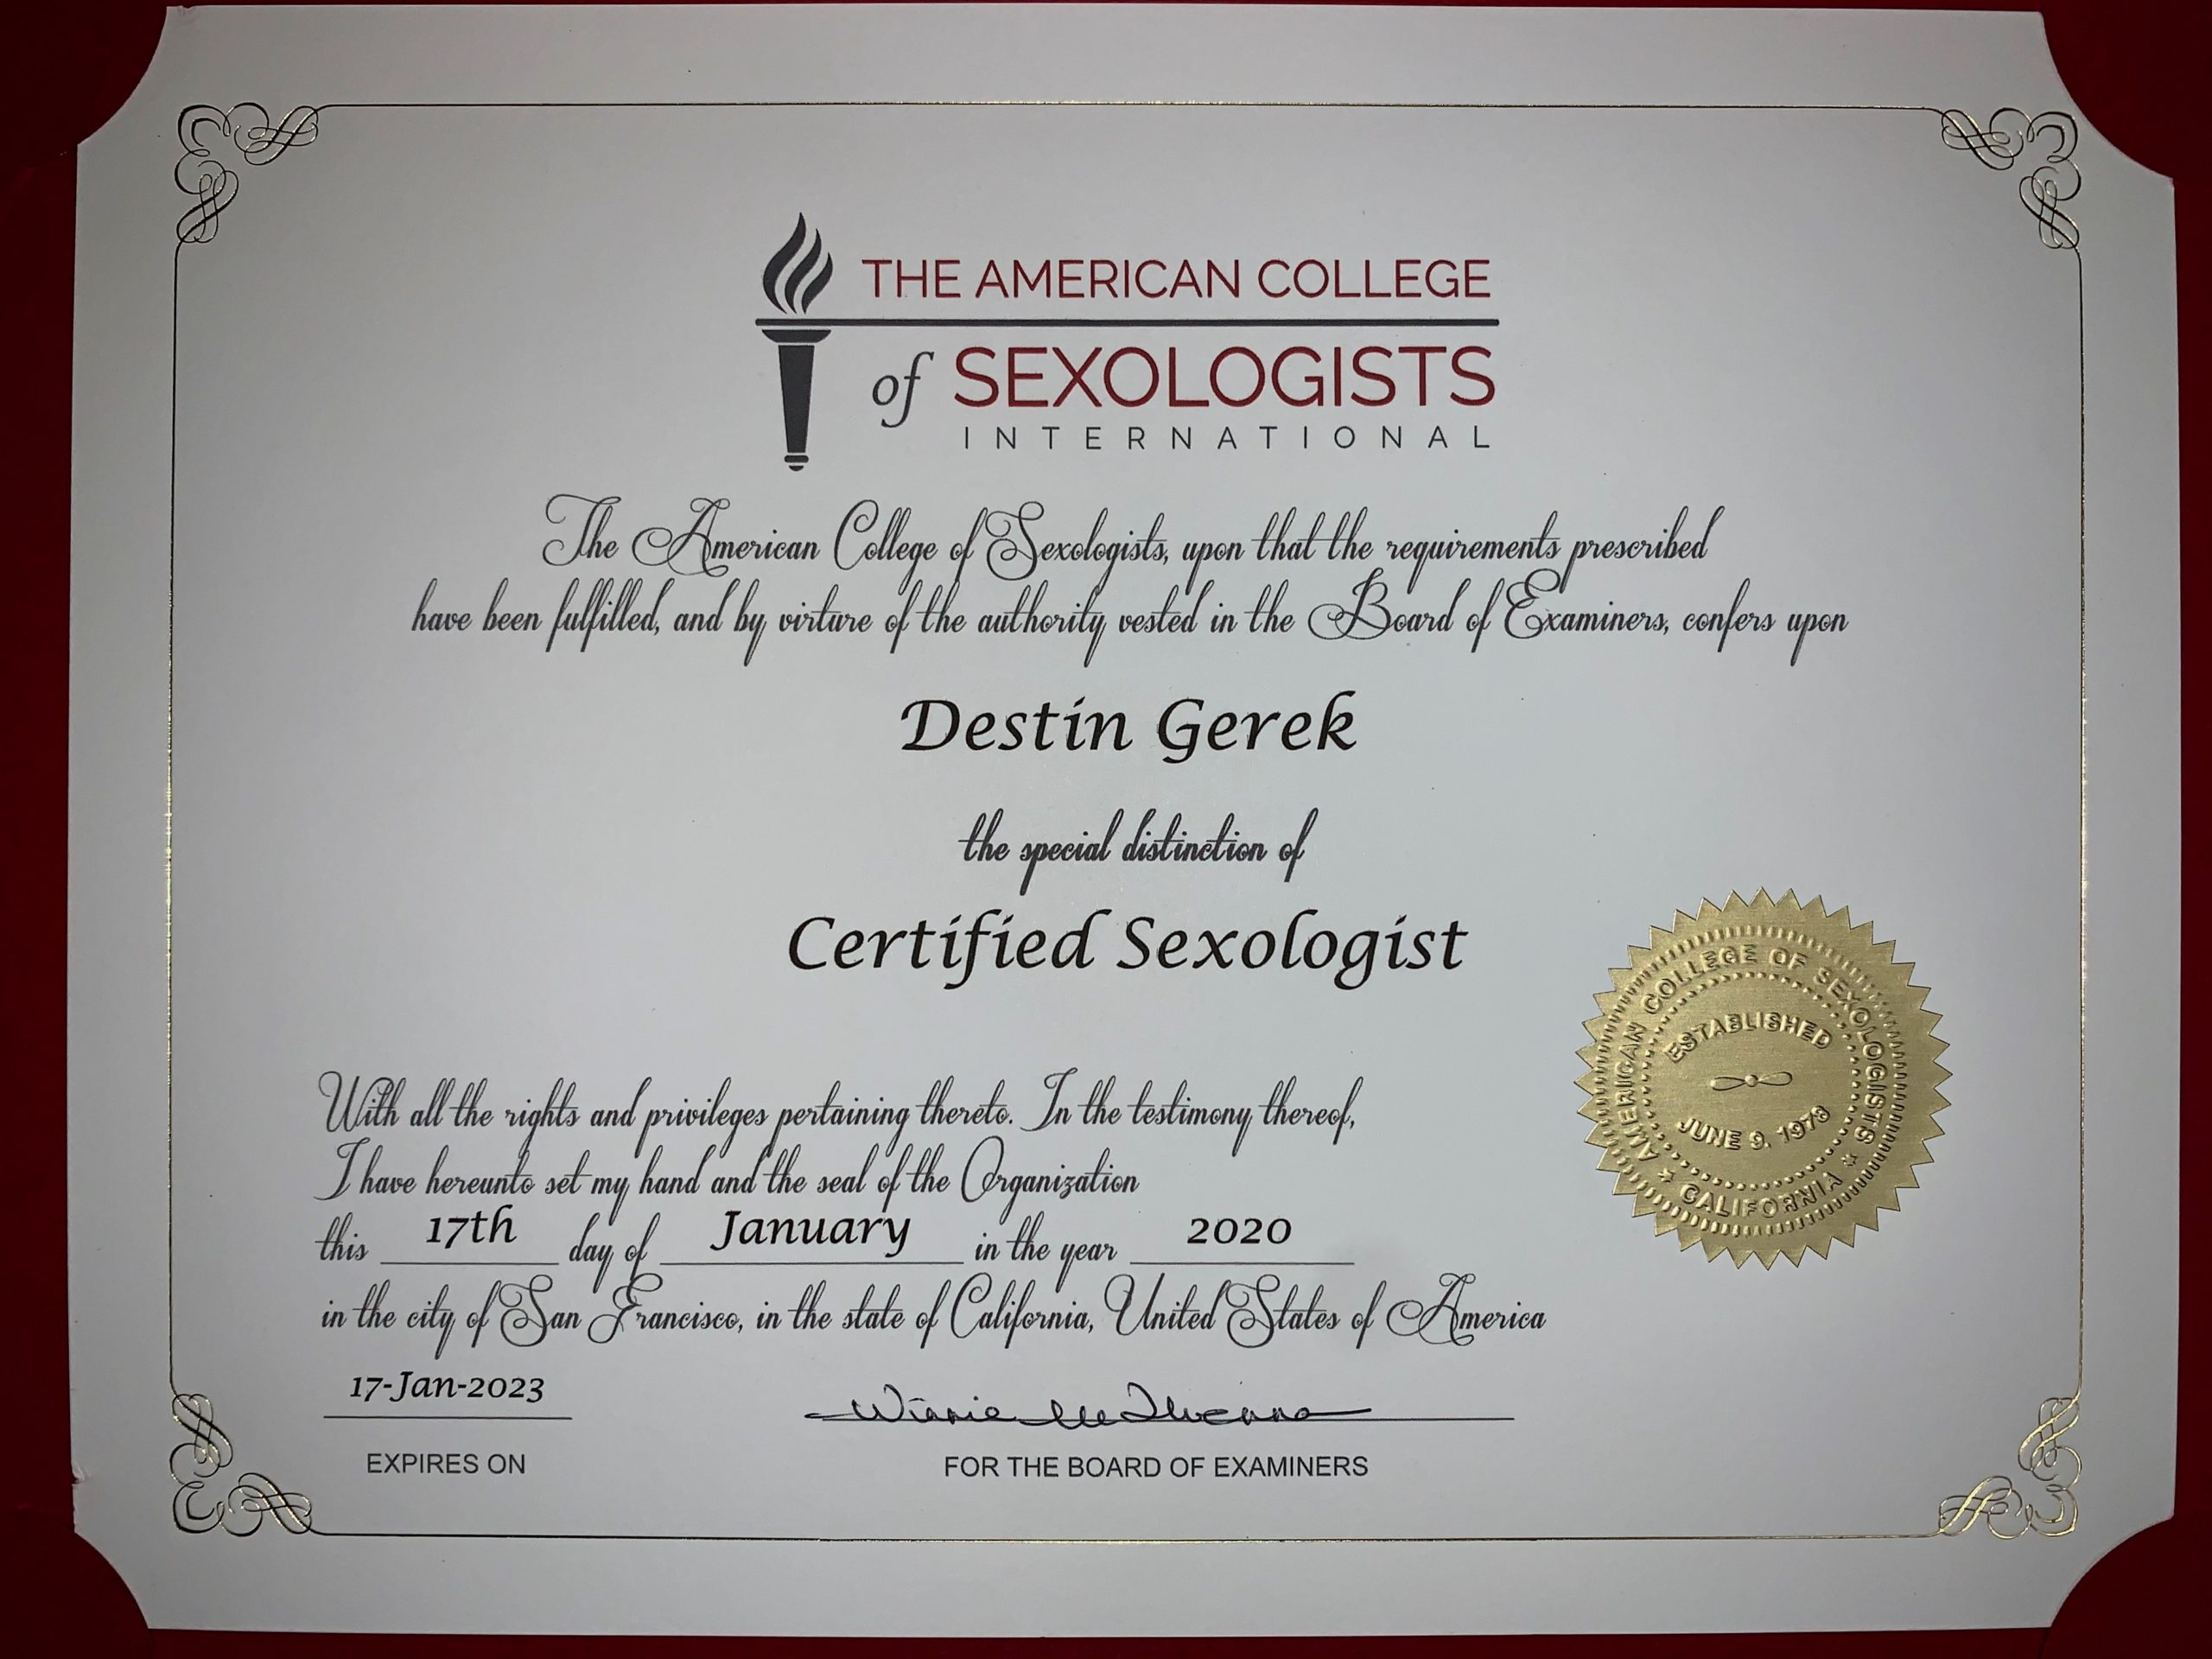 Certificate from the American College of Sexologists International